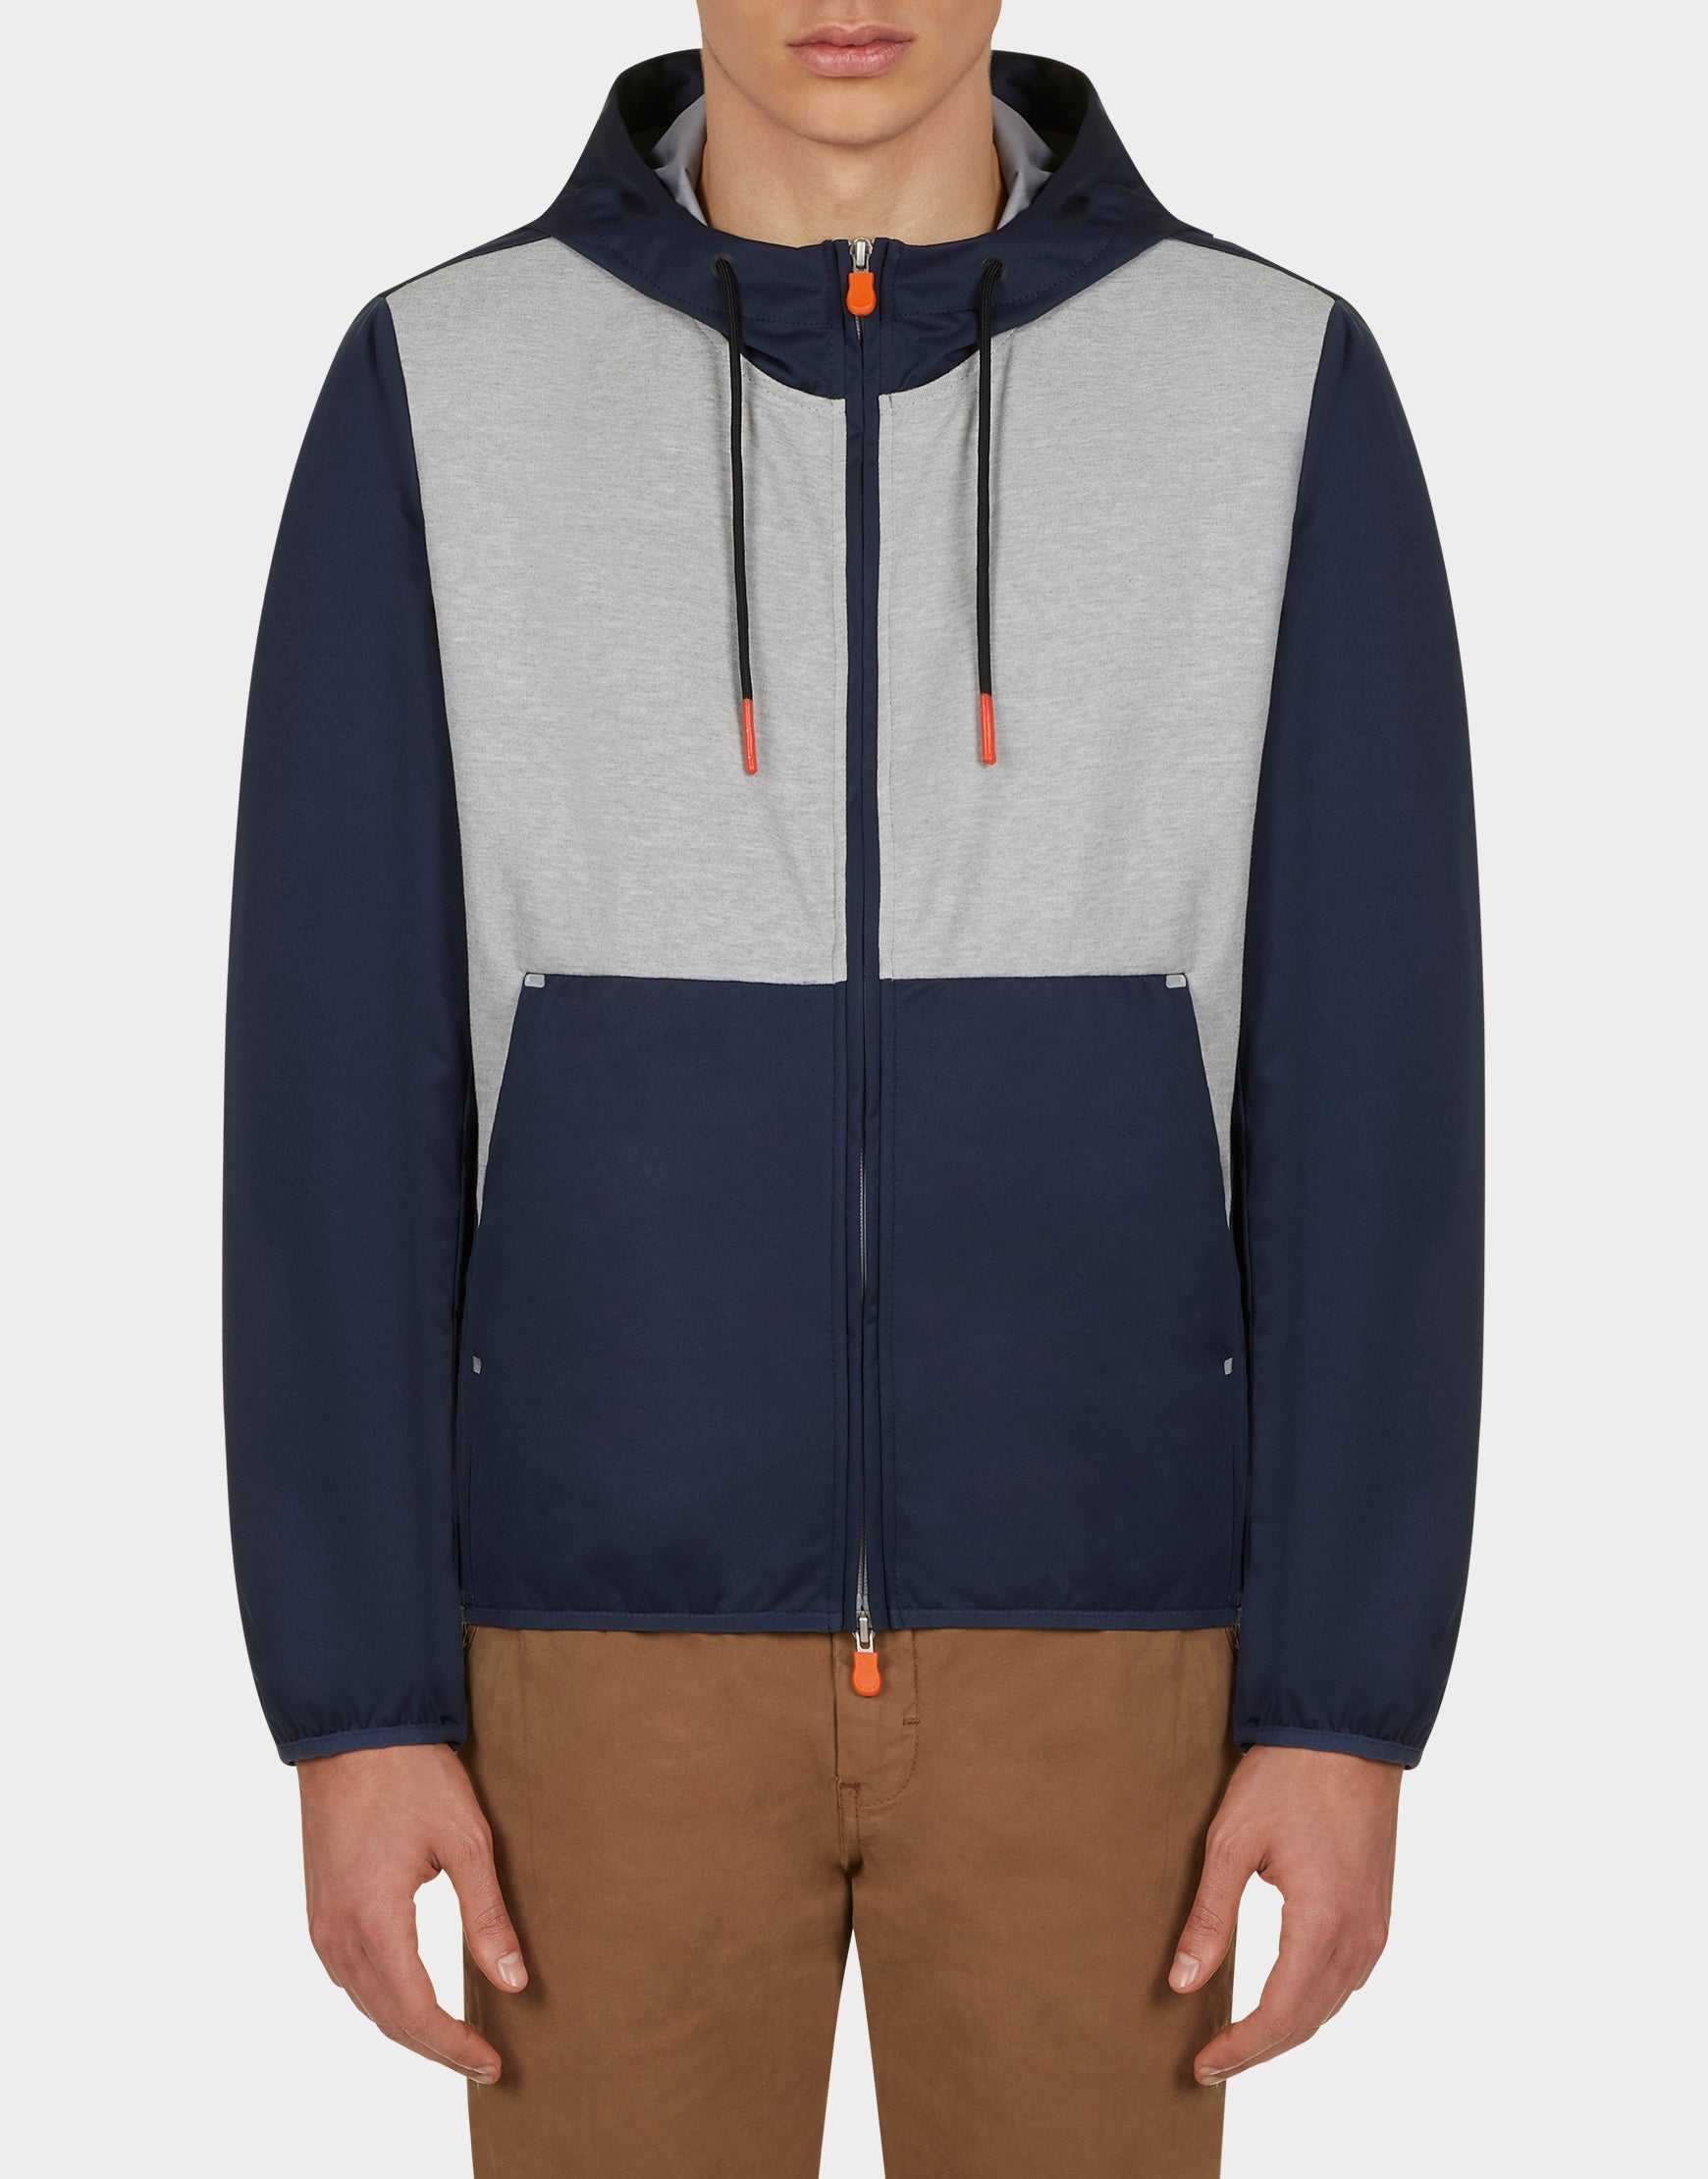 Mens FEBA Hooded Jacket in Navy Blue Light Grey